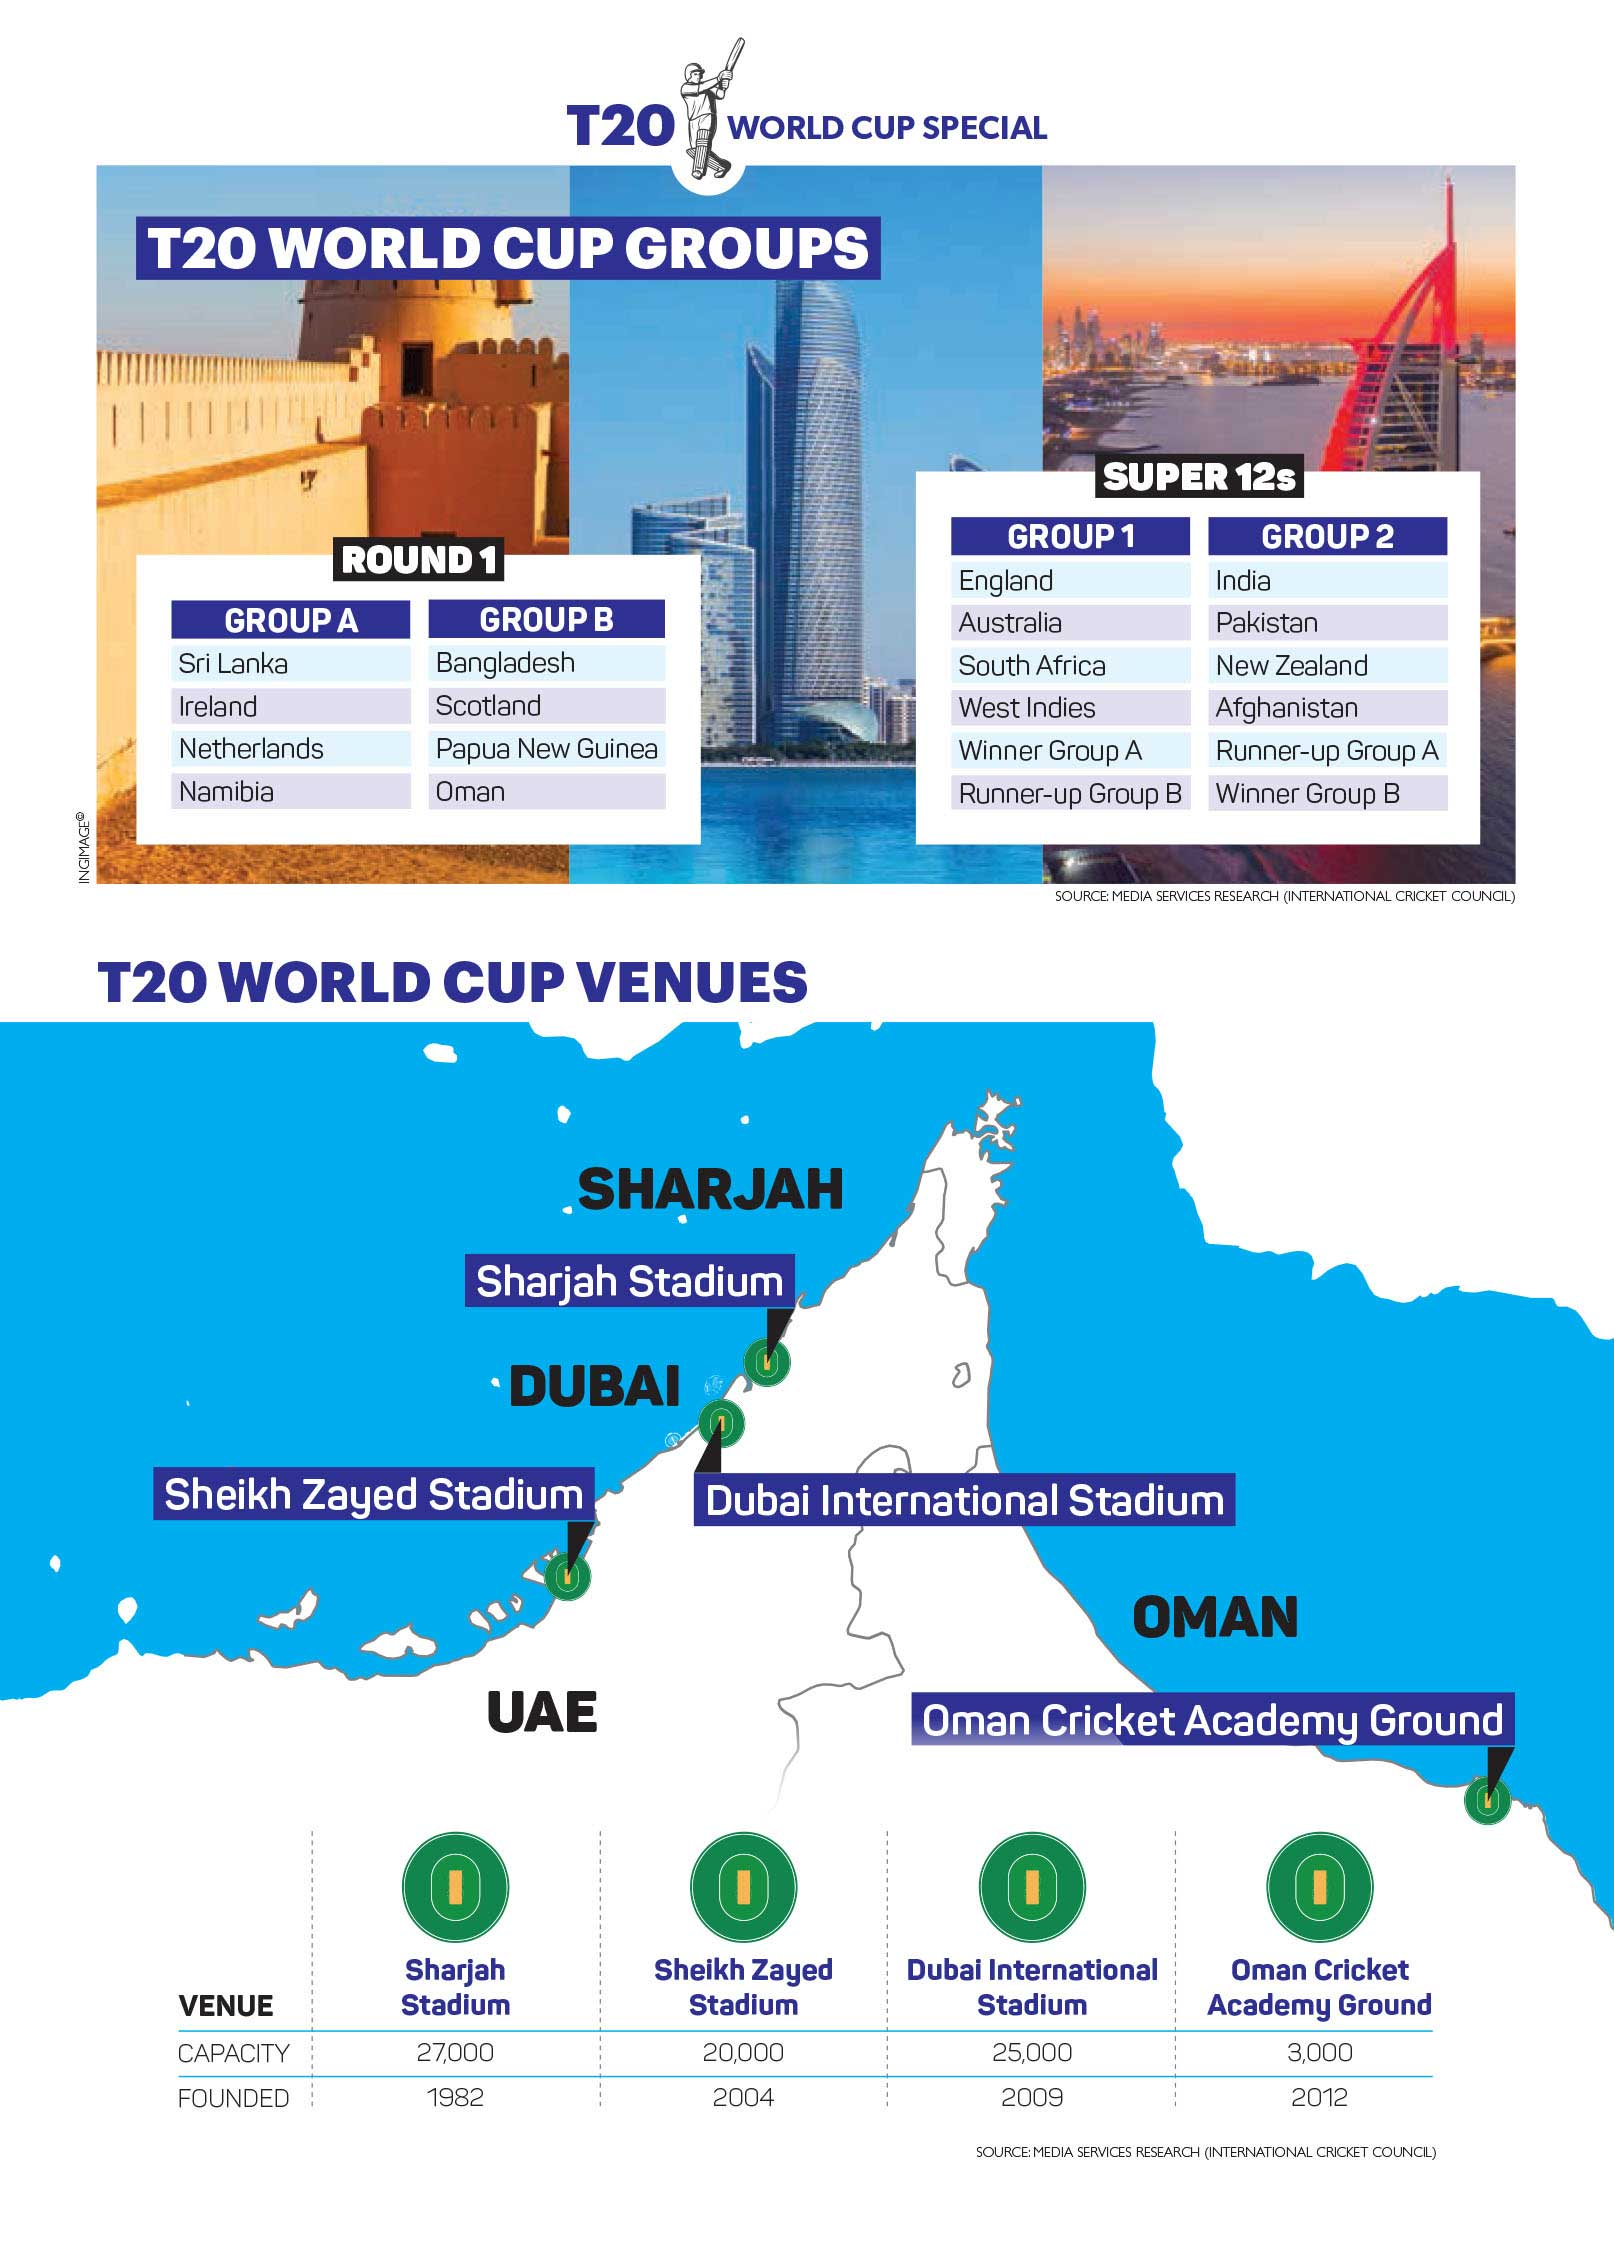 T20-WC-GROUPS-AND-VENUES